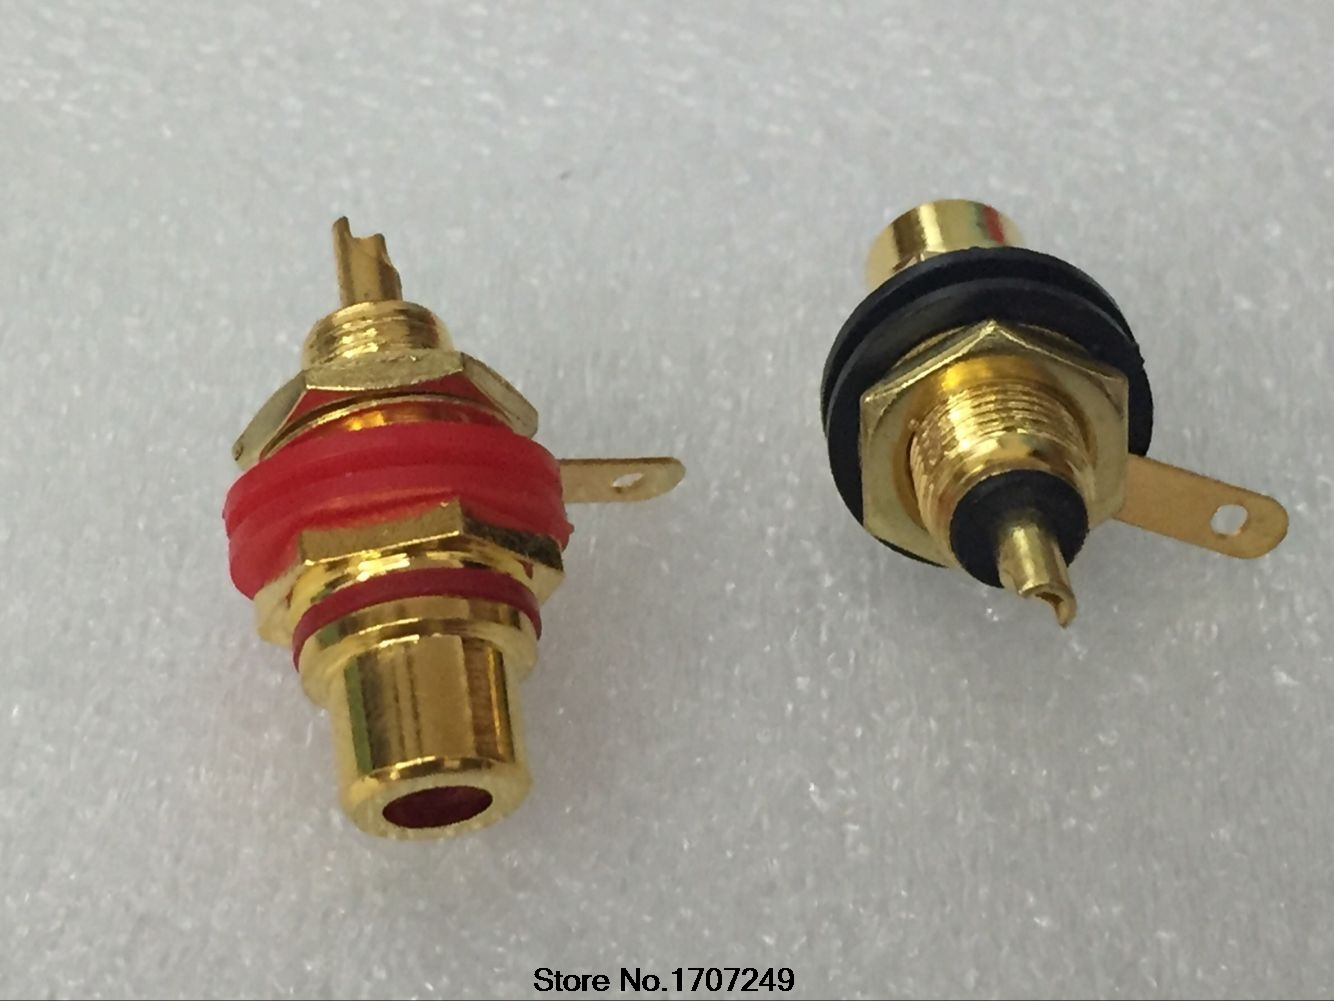 Free Shipping 20Pcs Gold Plated RCA Terminal Jack Plug Female Socket Chassis Panel Connector for Amplifier Speaker 100pcs bnc female socket plug panel chassis solder rg59